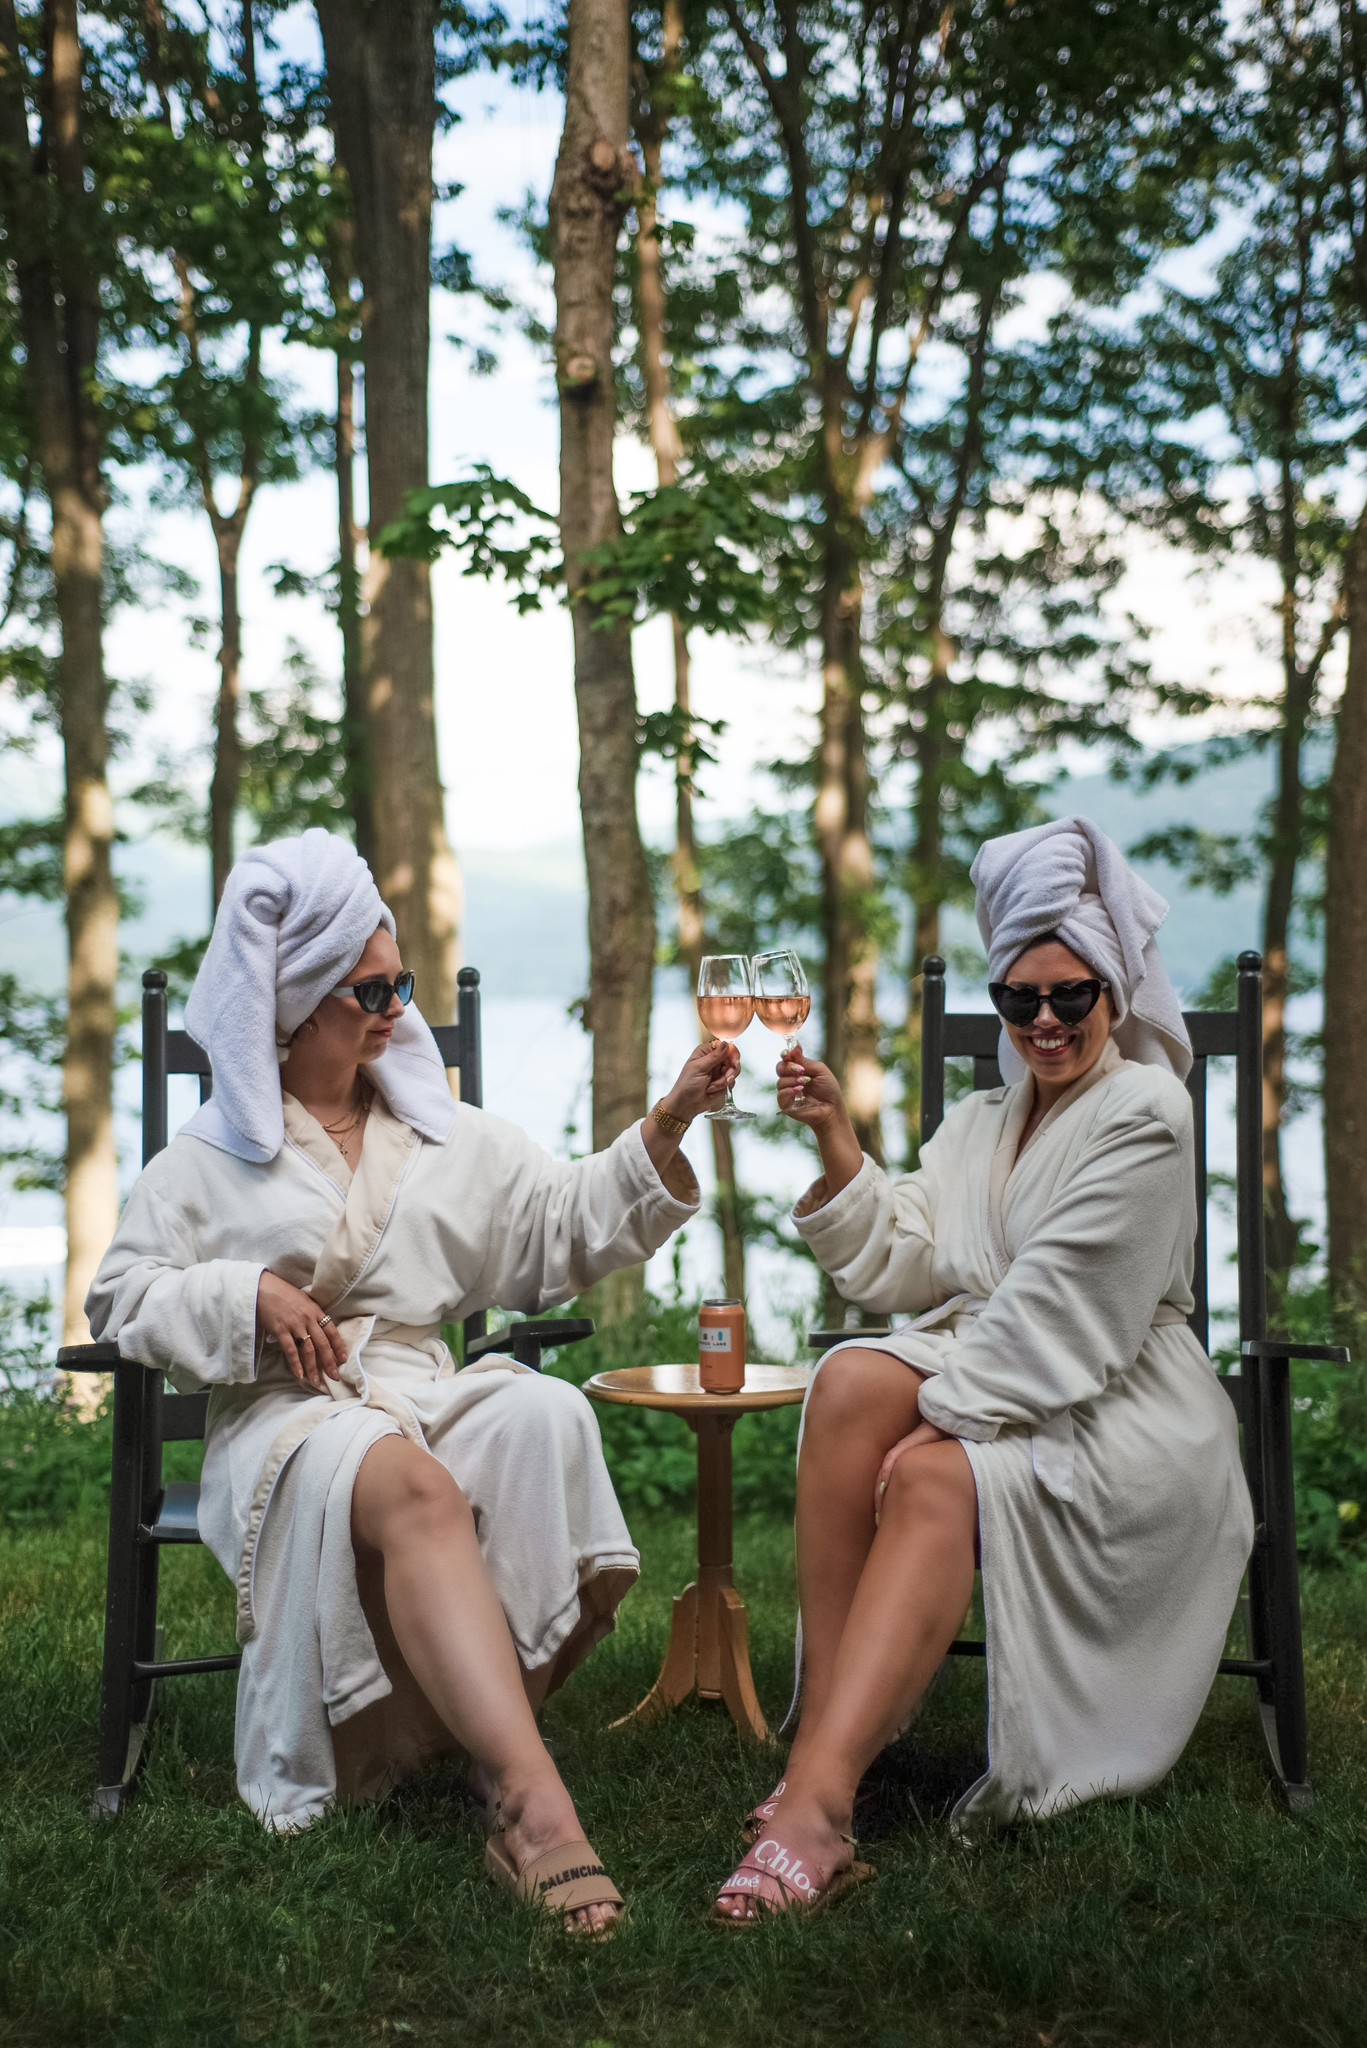 Bathrobe Photoshoot Ideas | 5 Reasons to Visit The Sagamore Resort on Lake George, NY this Summer | Where to Stay in Lake George | Adirondacks Vacation | Upstate New York Travel Guide | Top Luxury Resort in the Northeast | American Road Trip Ideas | Best Place to Stay in Bolton Landing, New York | Family Friendly Resort in New York | Best Hotels in America | Waterfront Resorts | Best Girl Trip Ideas | Historic New York Hotels